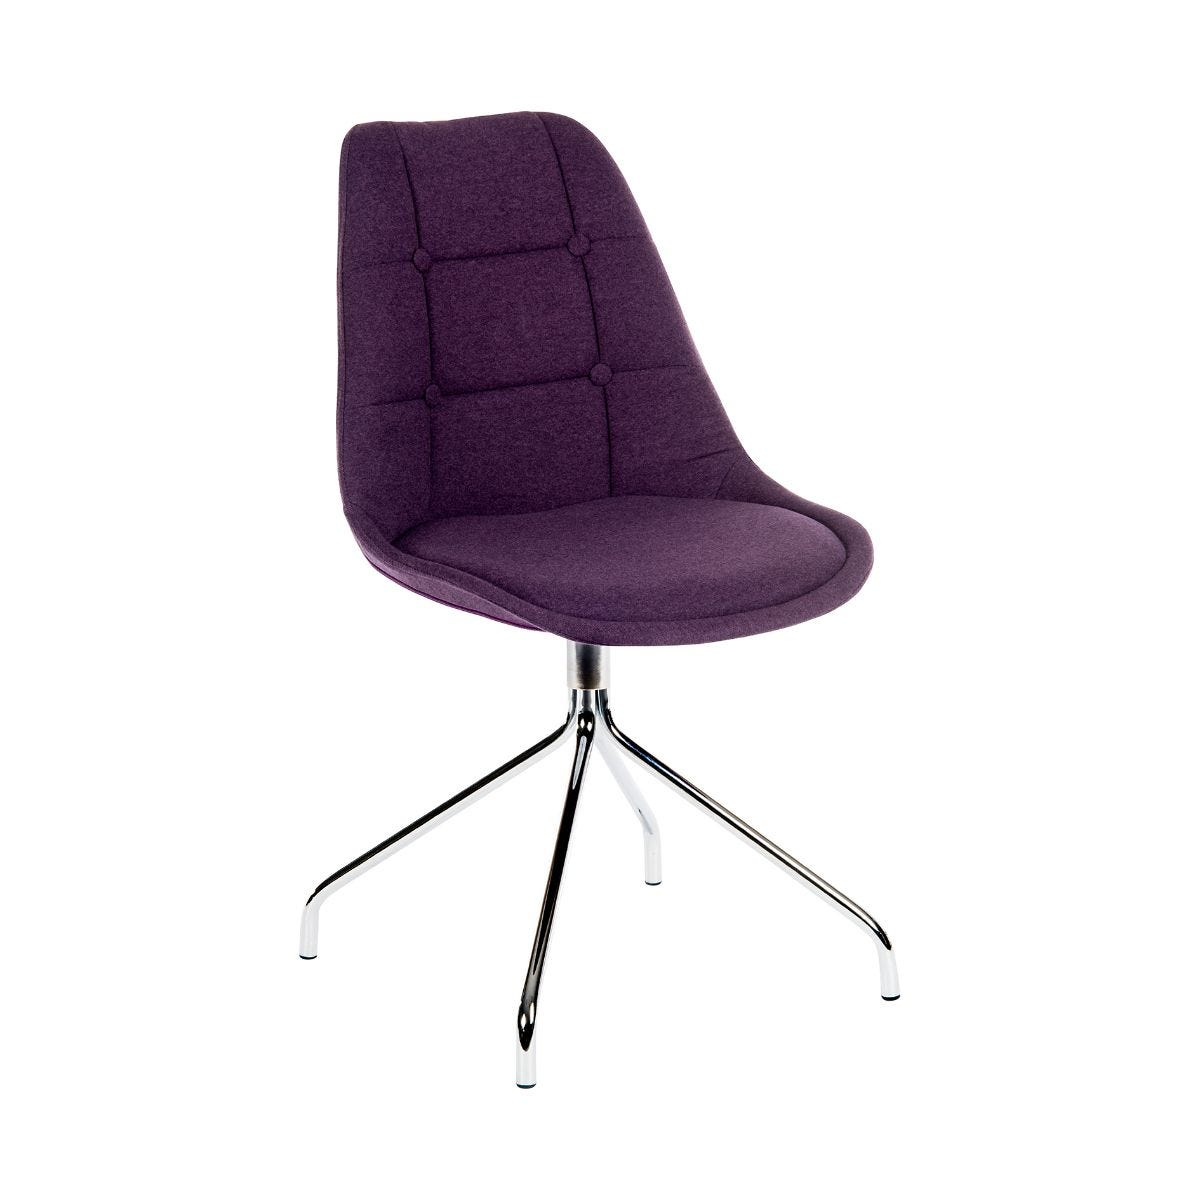 Teknik Office Breakout Soft Padded Office Chair Pack of 2, plum